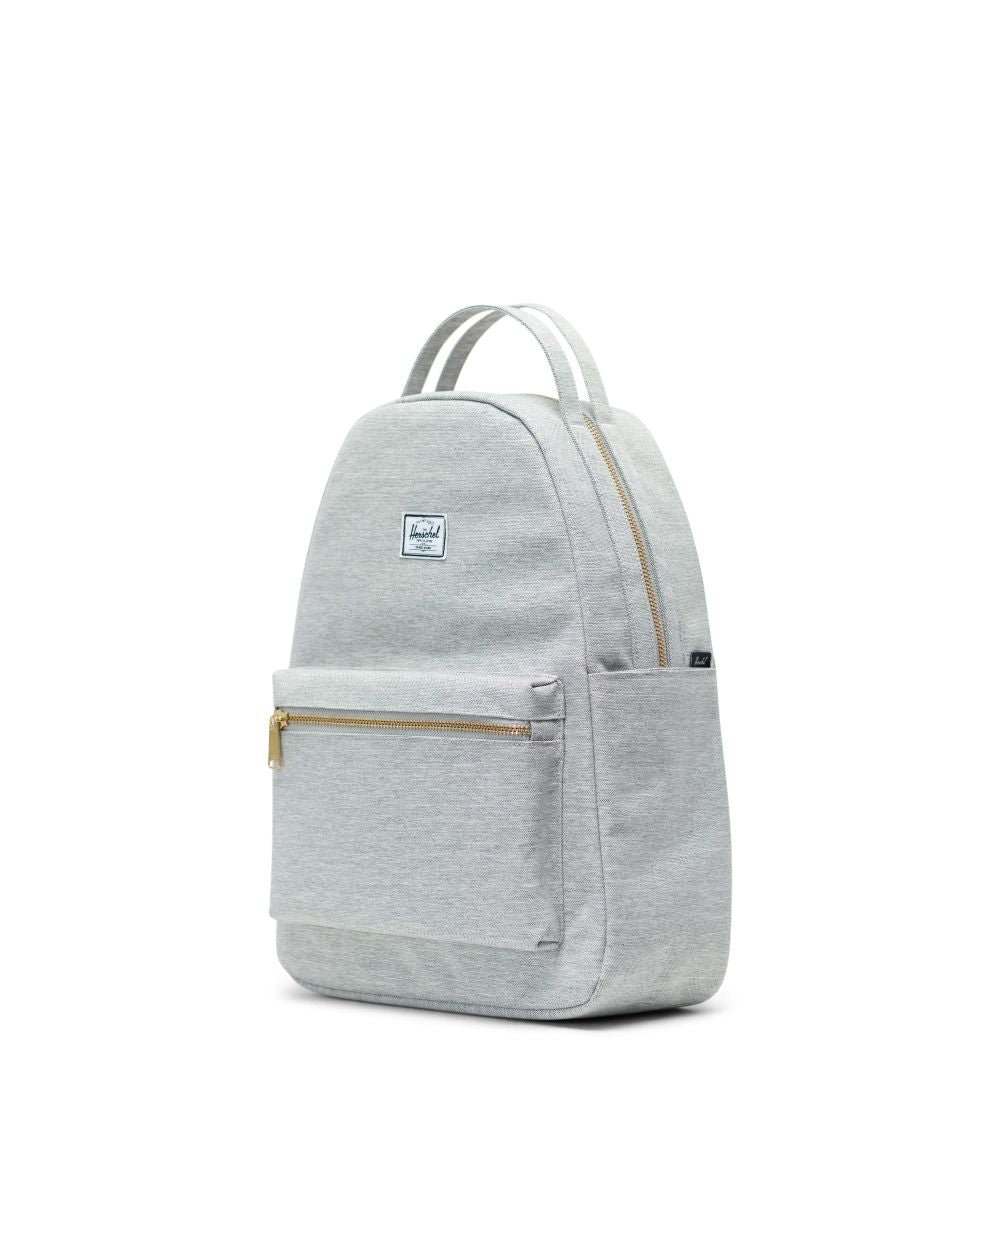 NOVA BACKPACK MID-VOLUME - LIGHT GREY CROSSHATCH